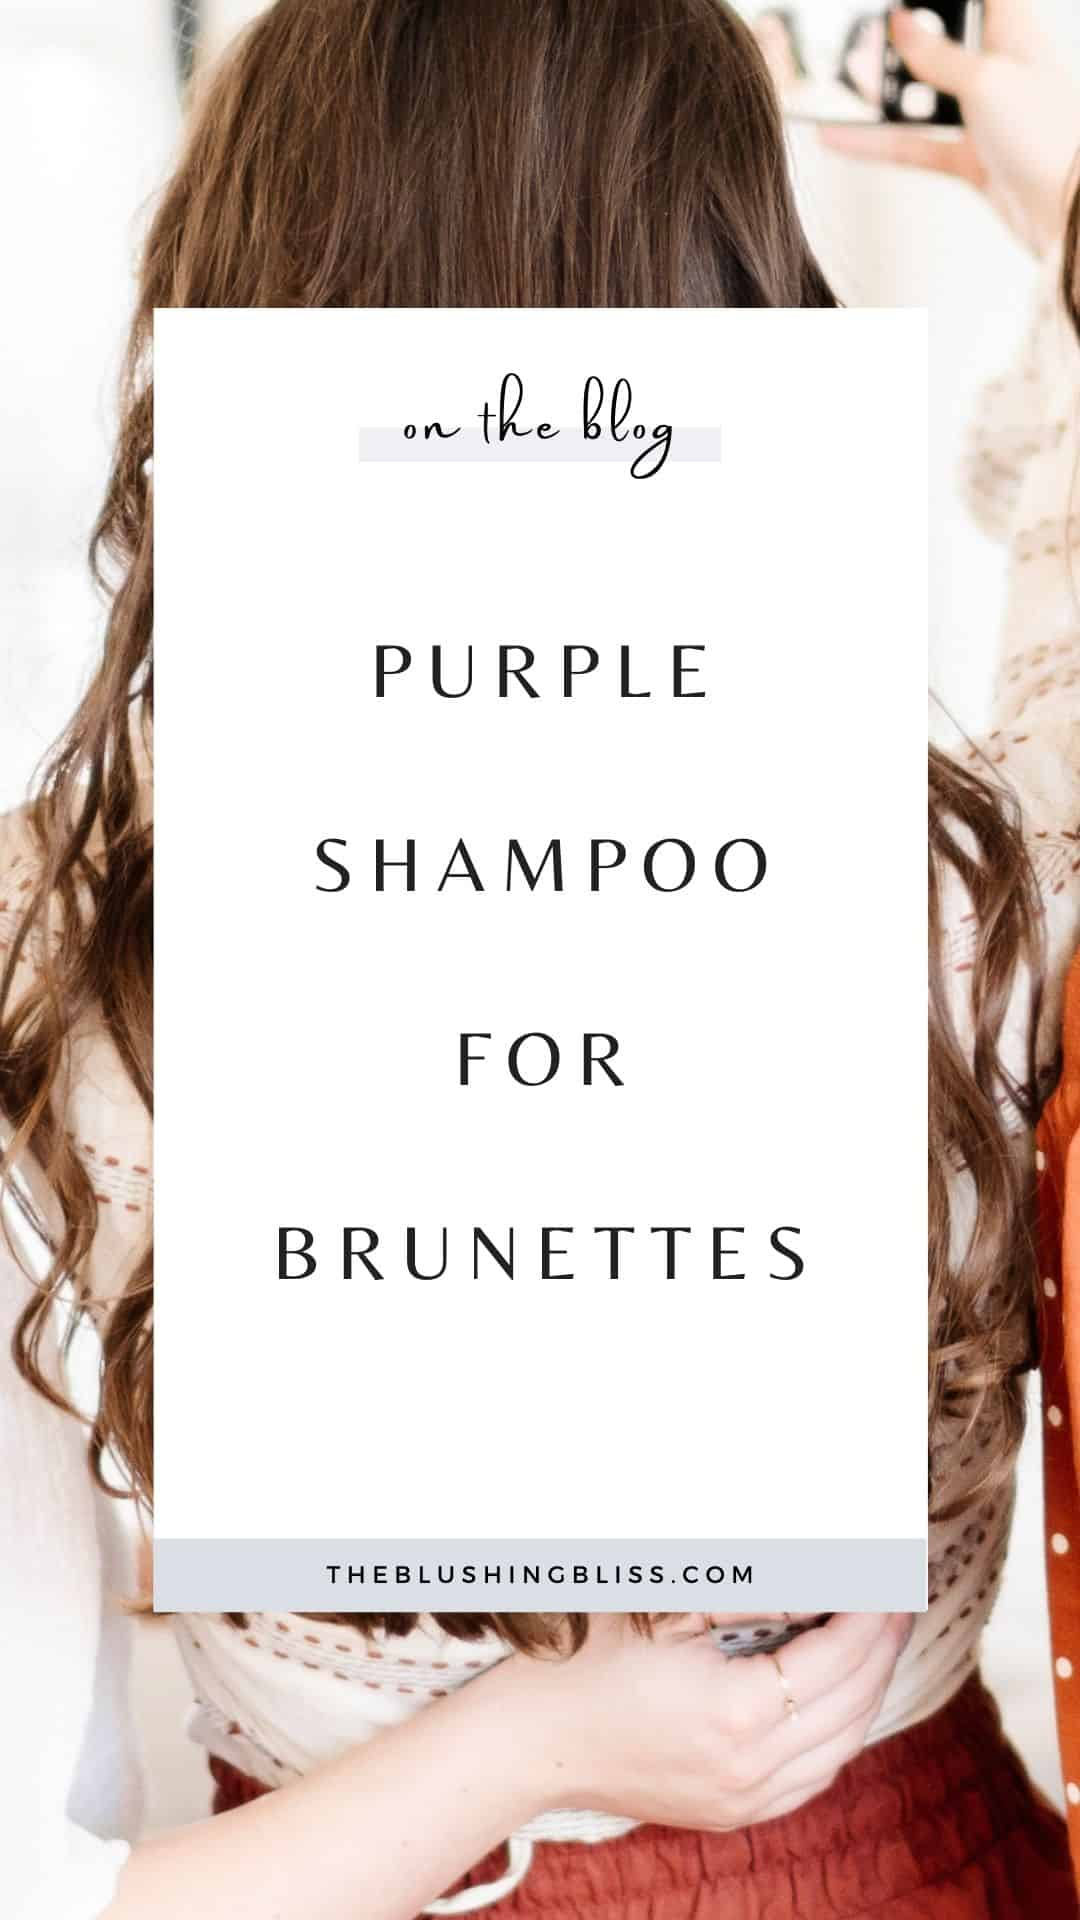 does purple shampoo do anything to brown hair?